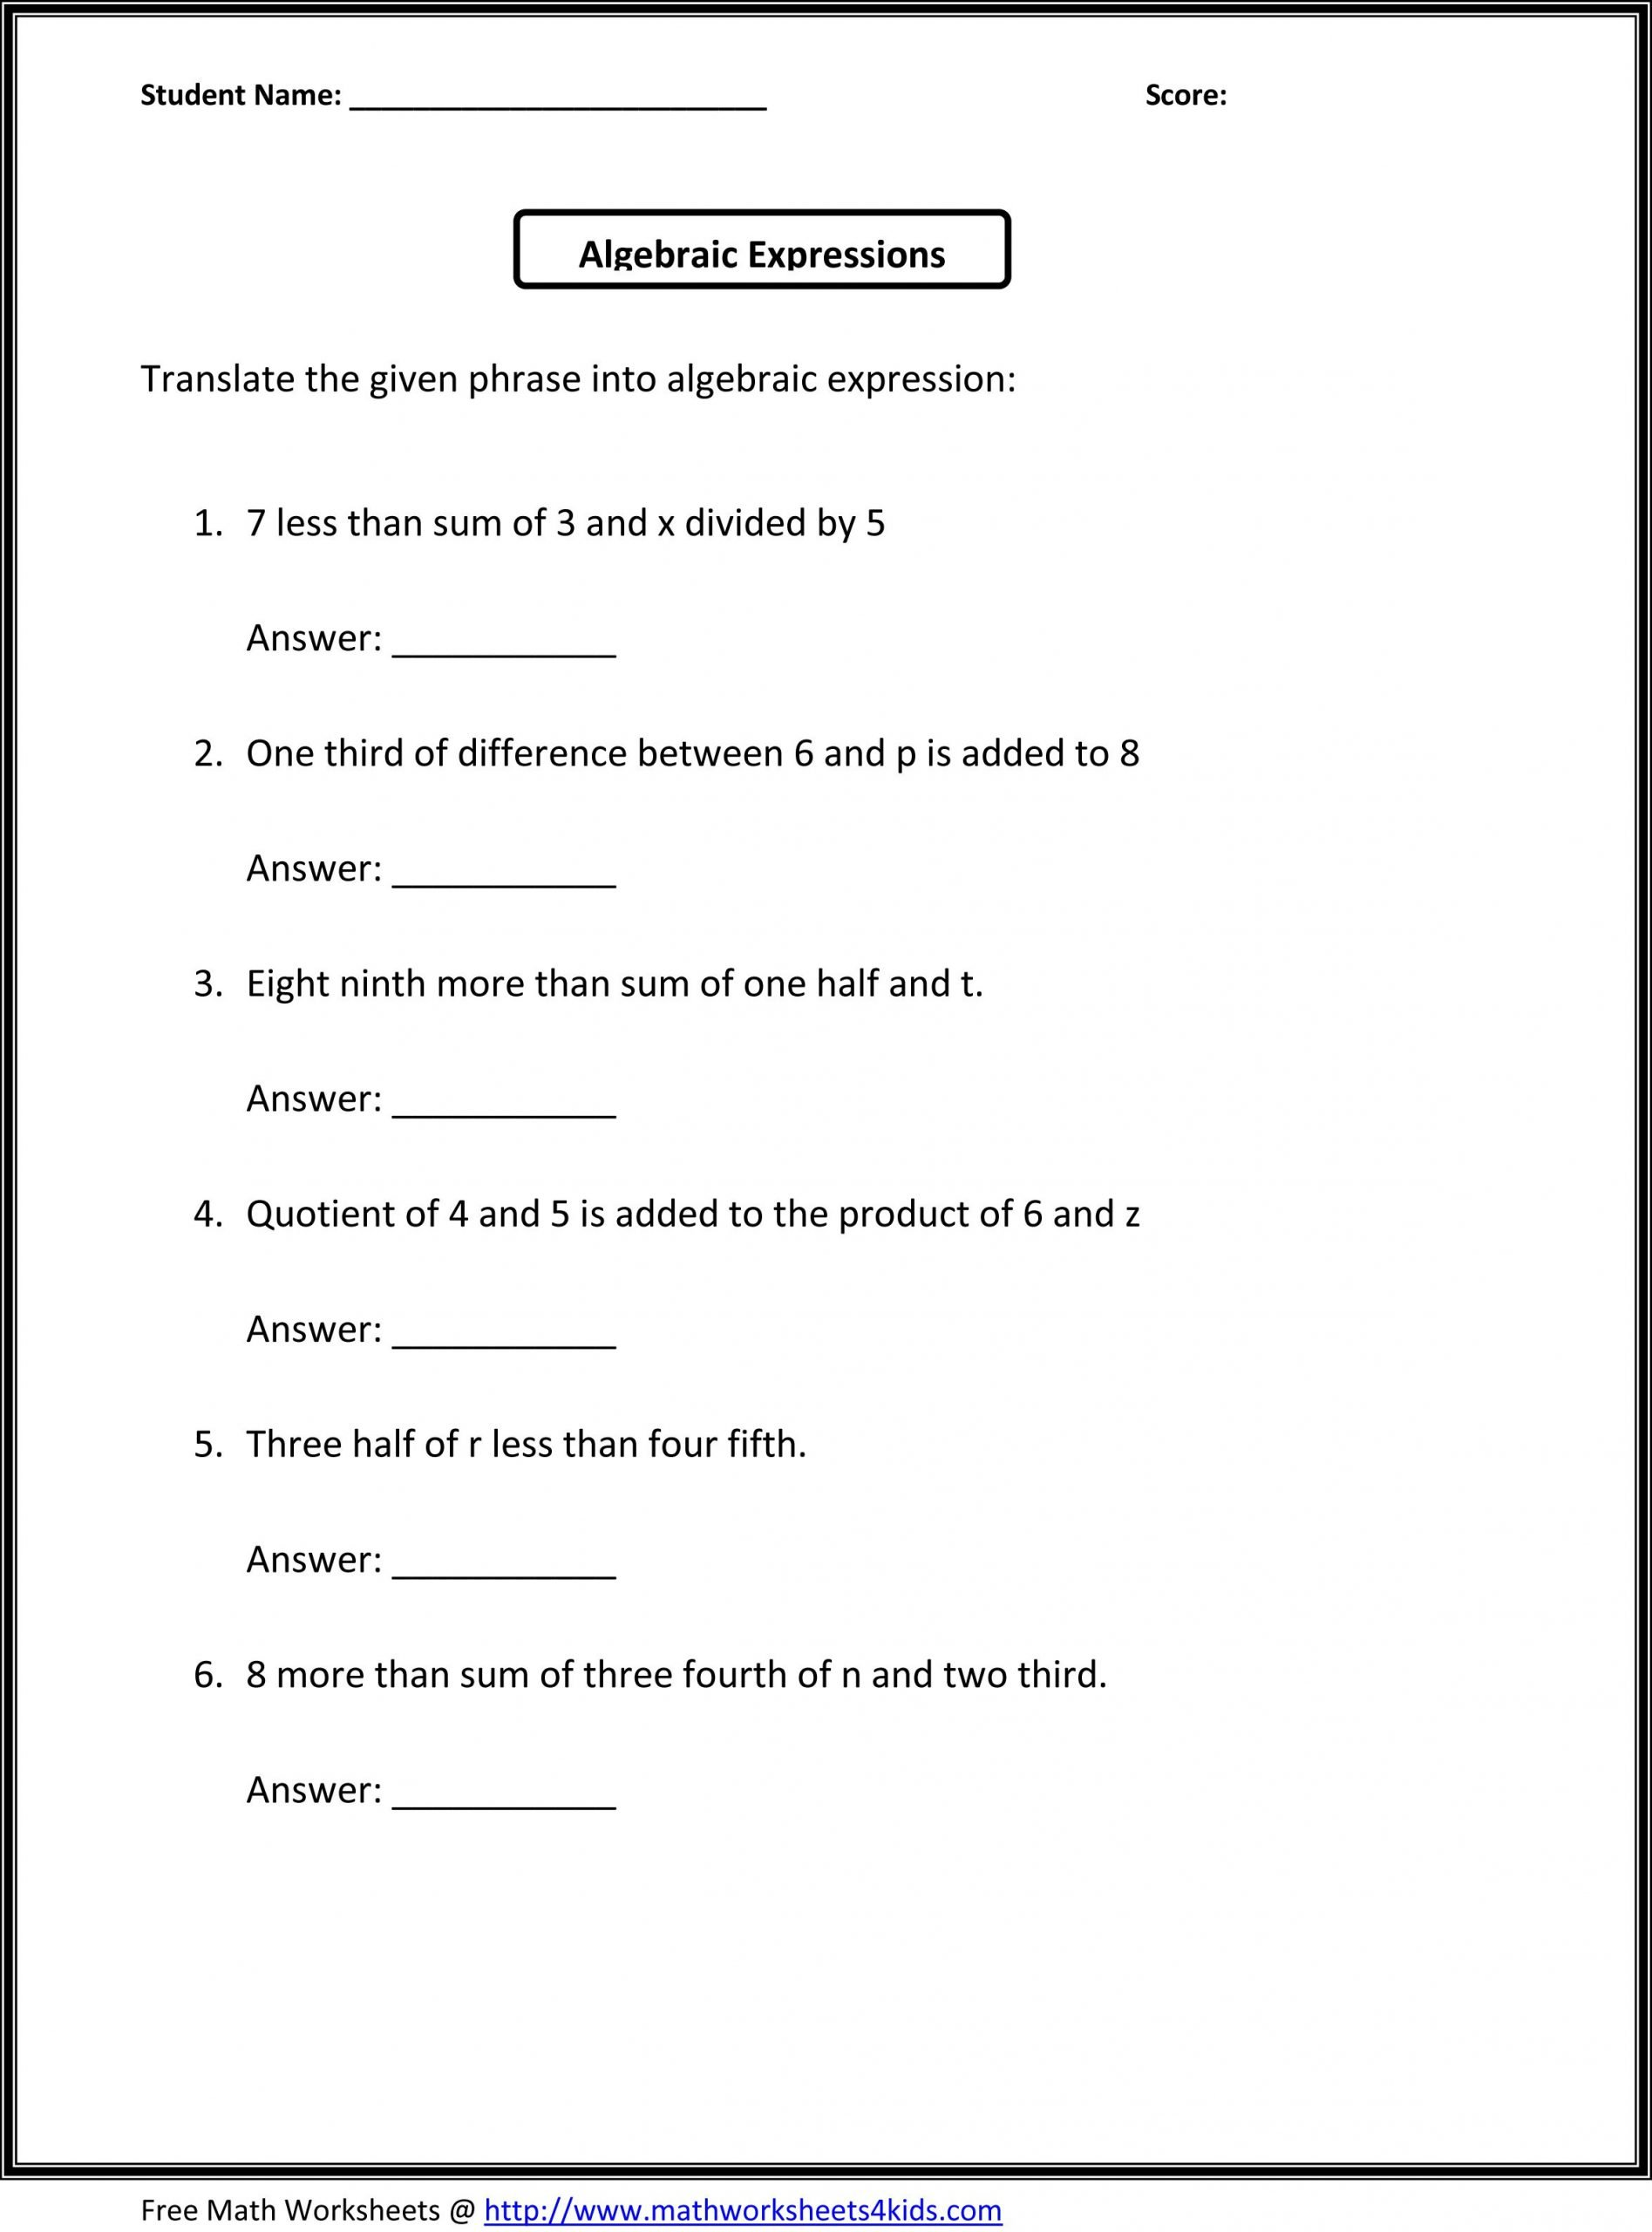 algebraic expressions worksheets 6th grade answers